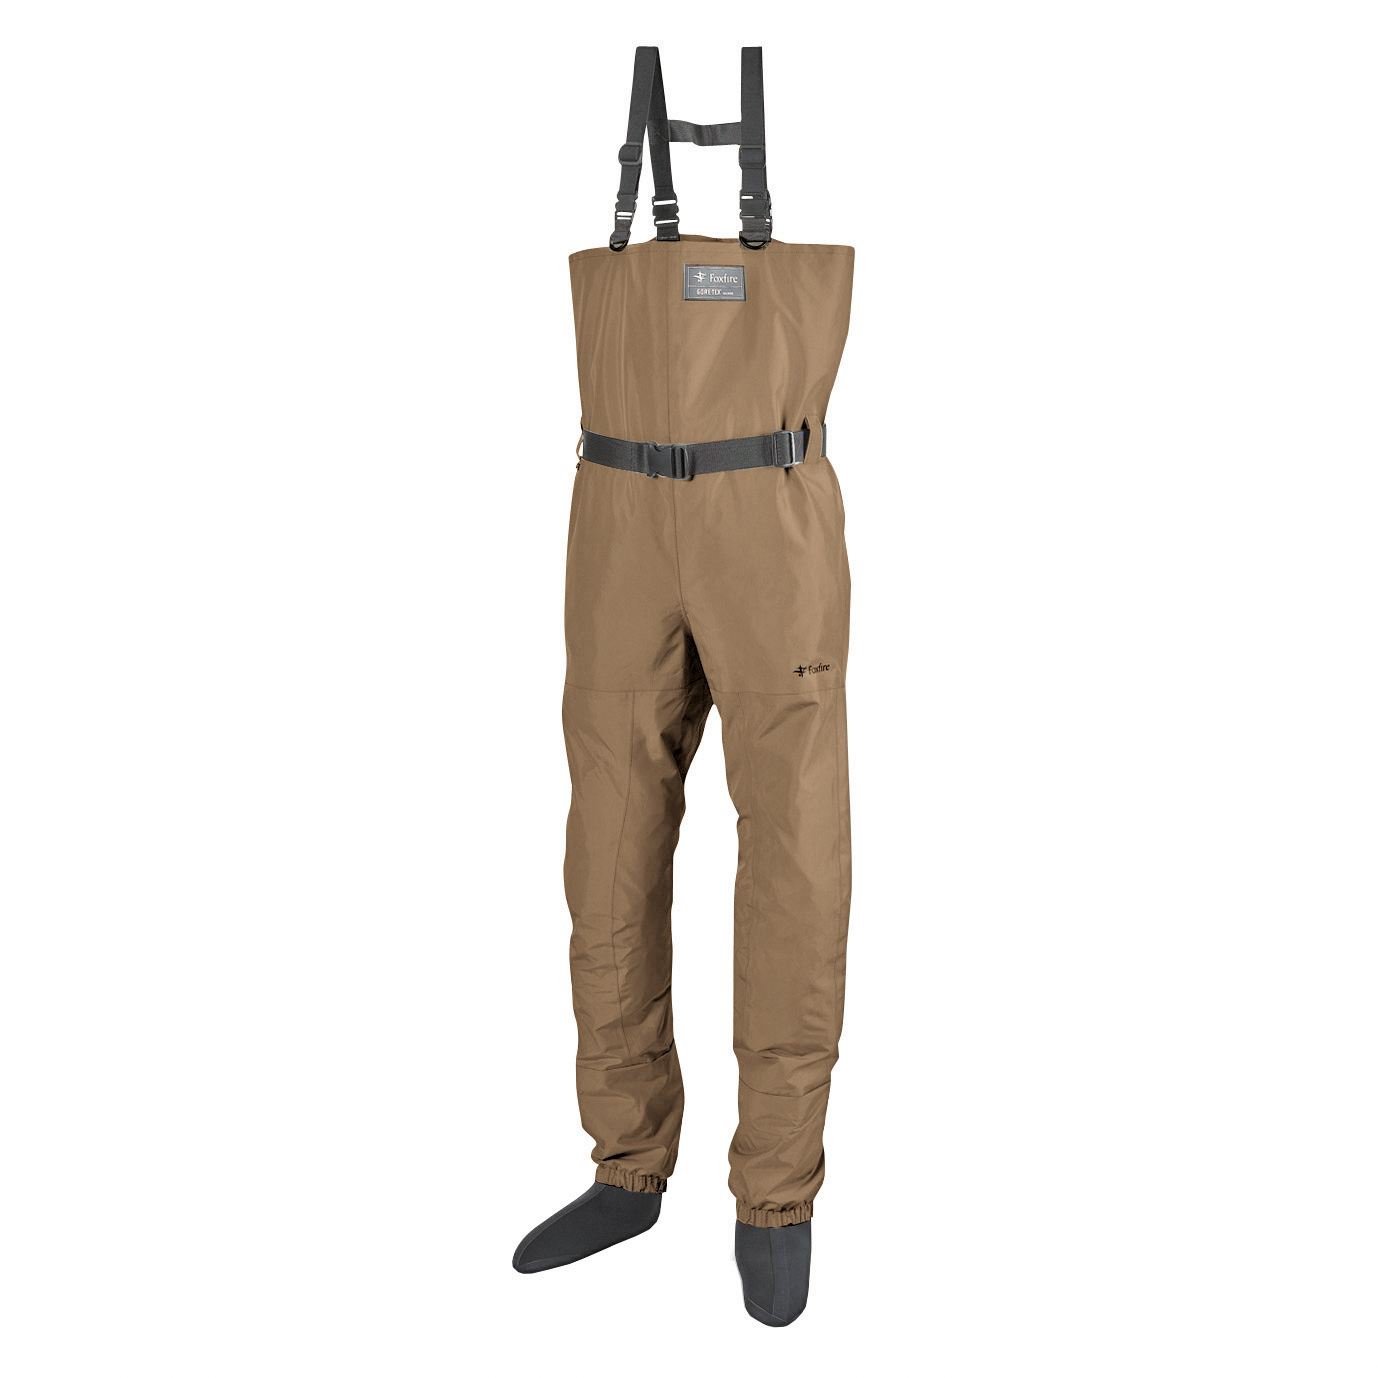 Vertical Two-Seam Waders